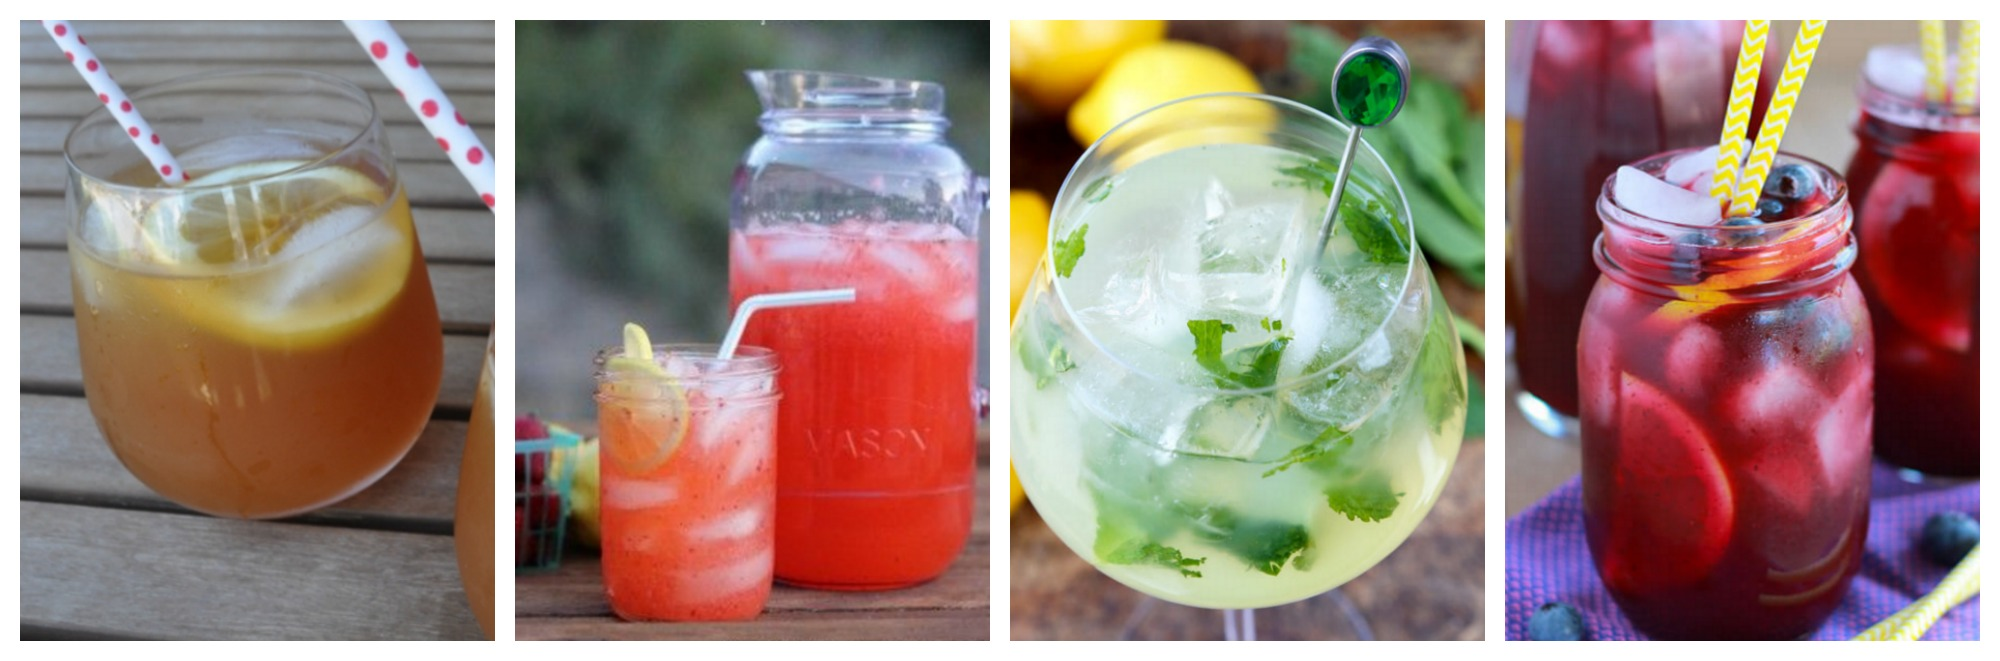 lemonade recipes to make at home